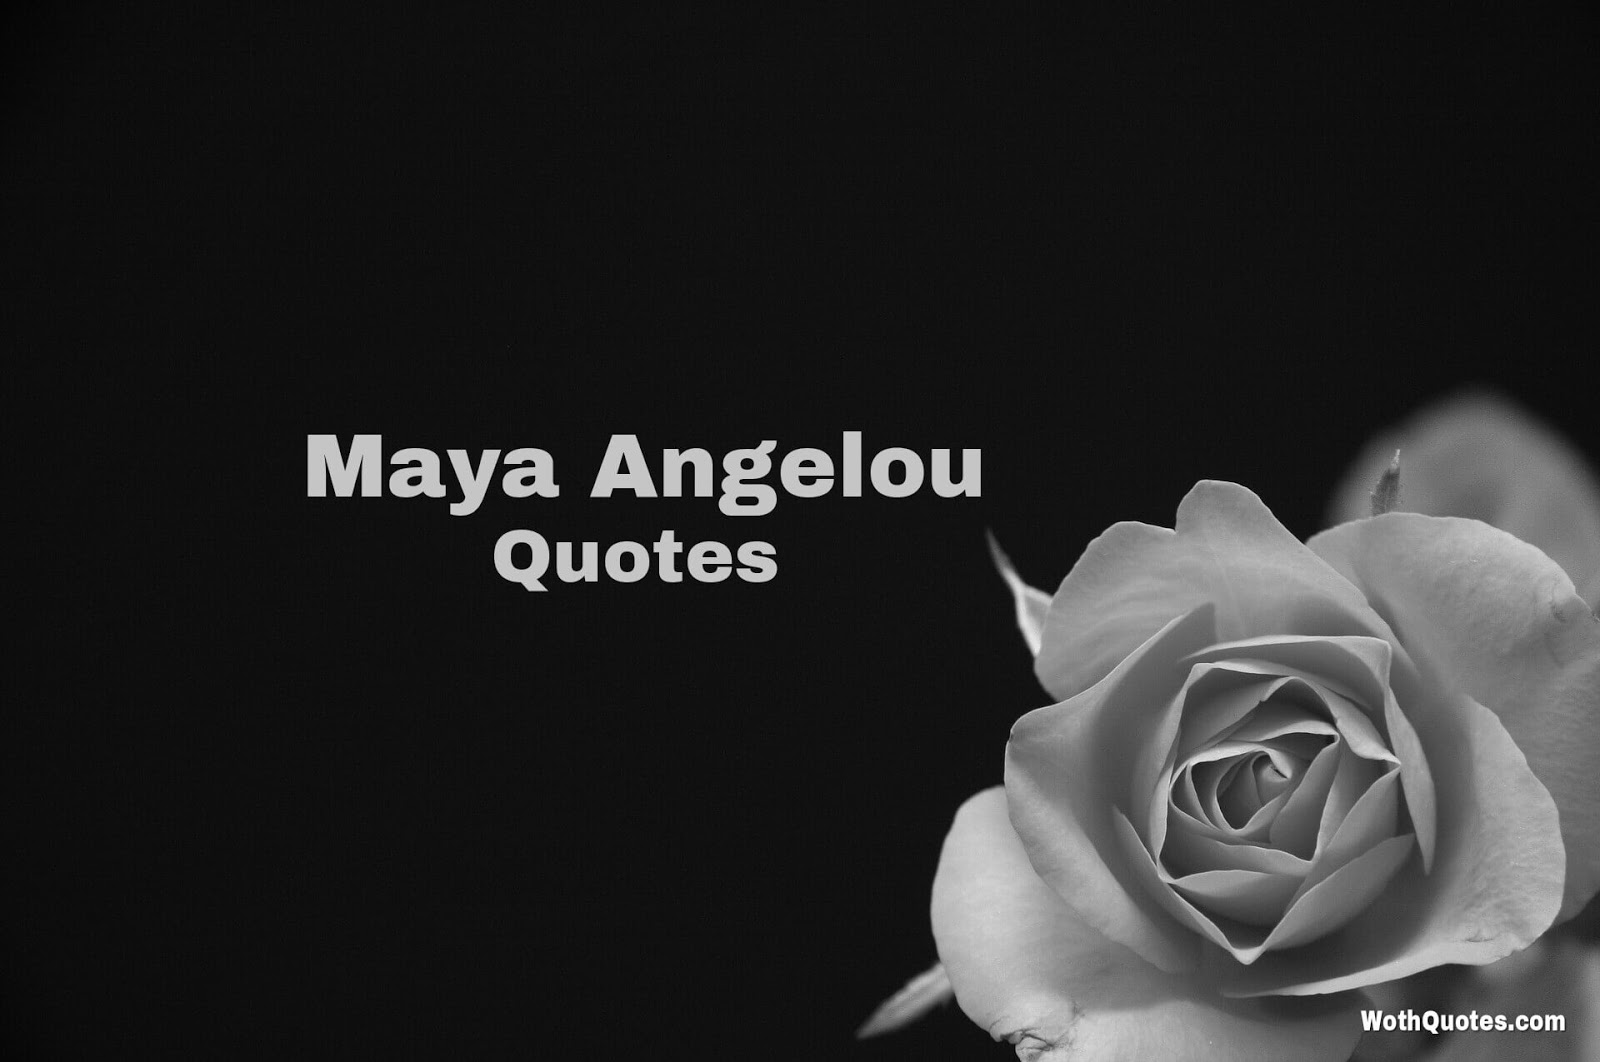 Maya Angelou Quotes And Sayings: Maya Angelou Quotes - WothQuotes